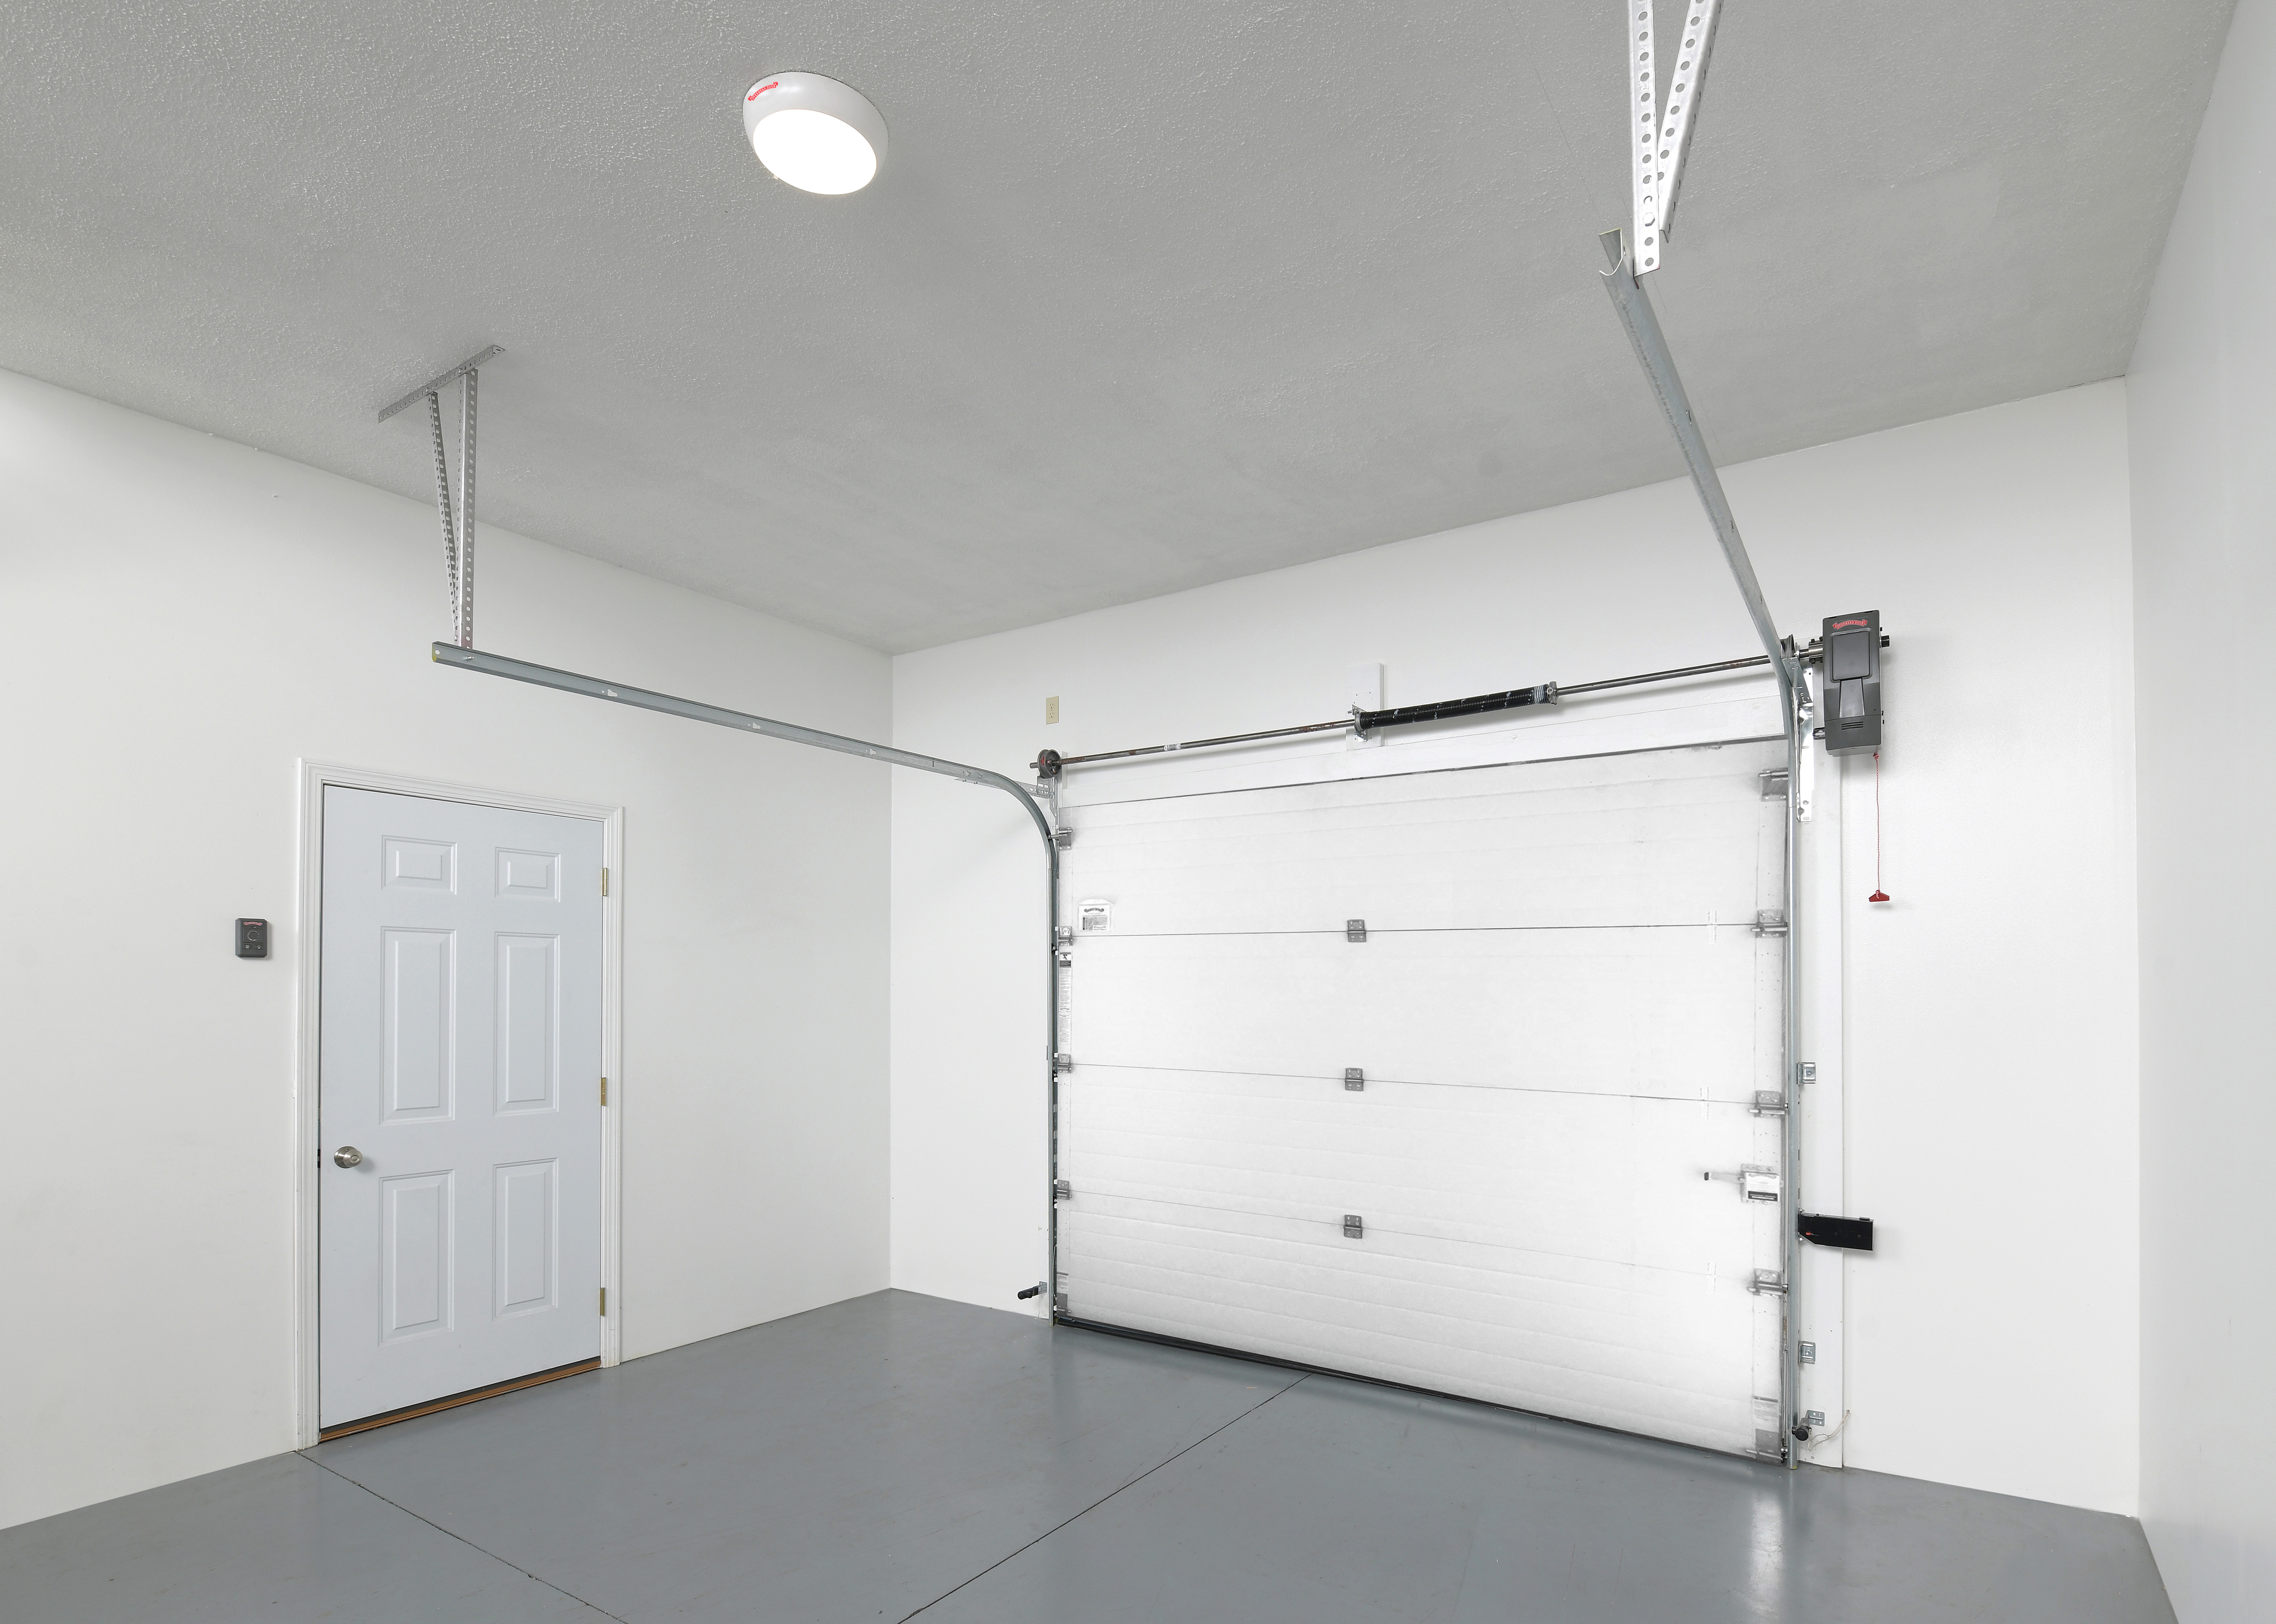 Overhead Door Introduces Its First Wall Mount Garage Openers Residential Products Online